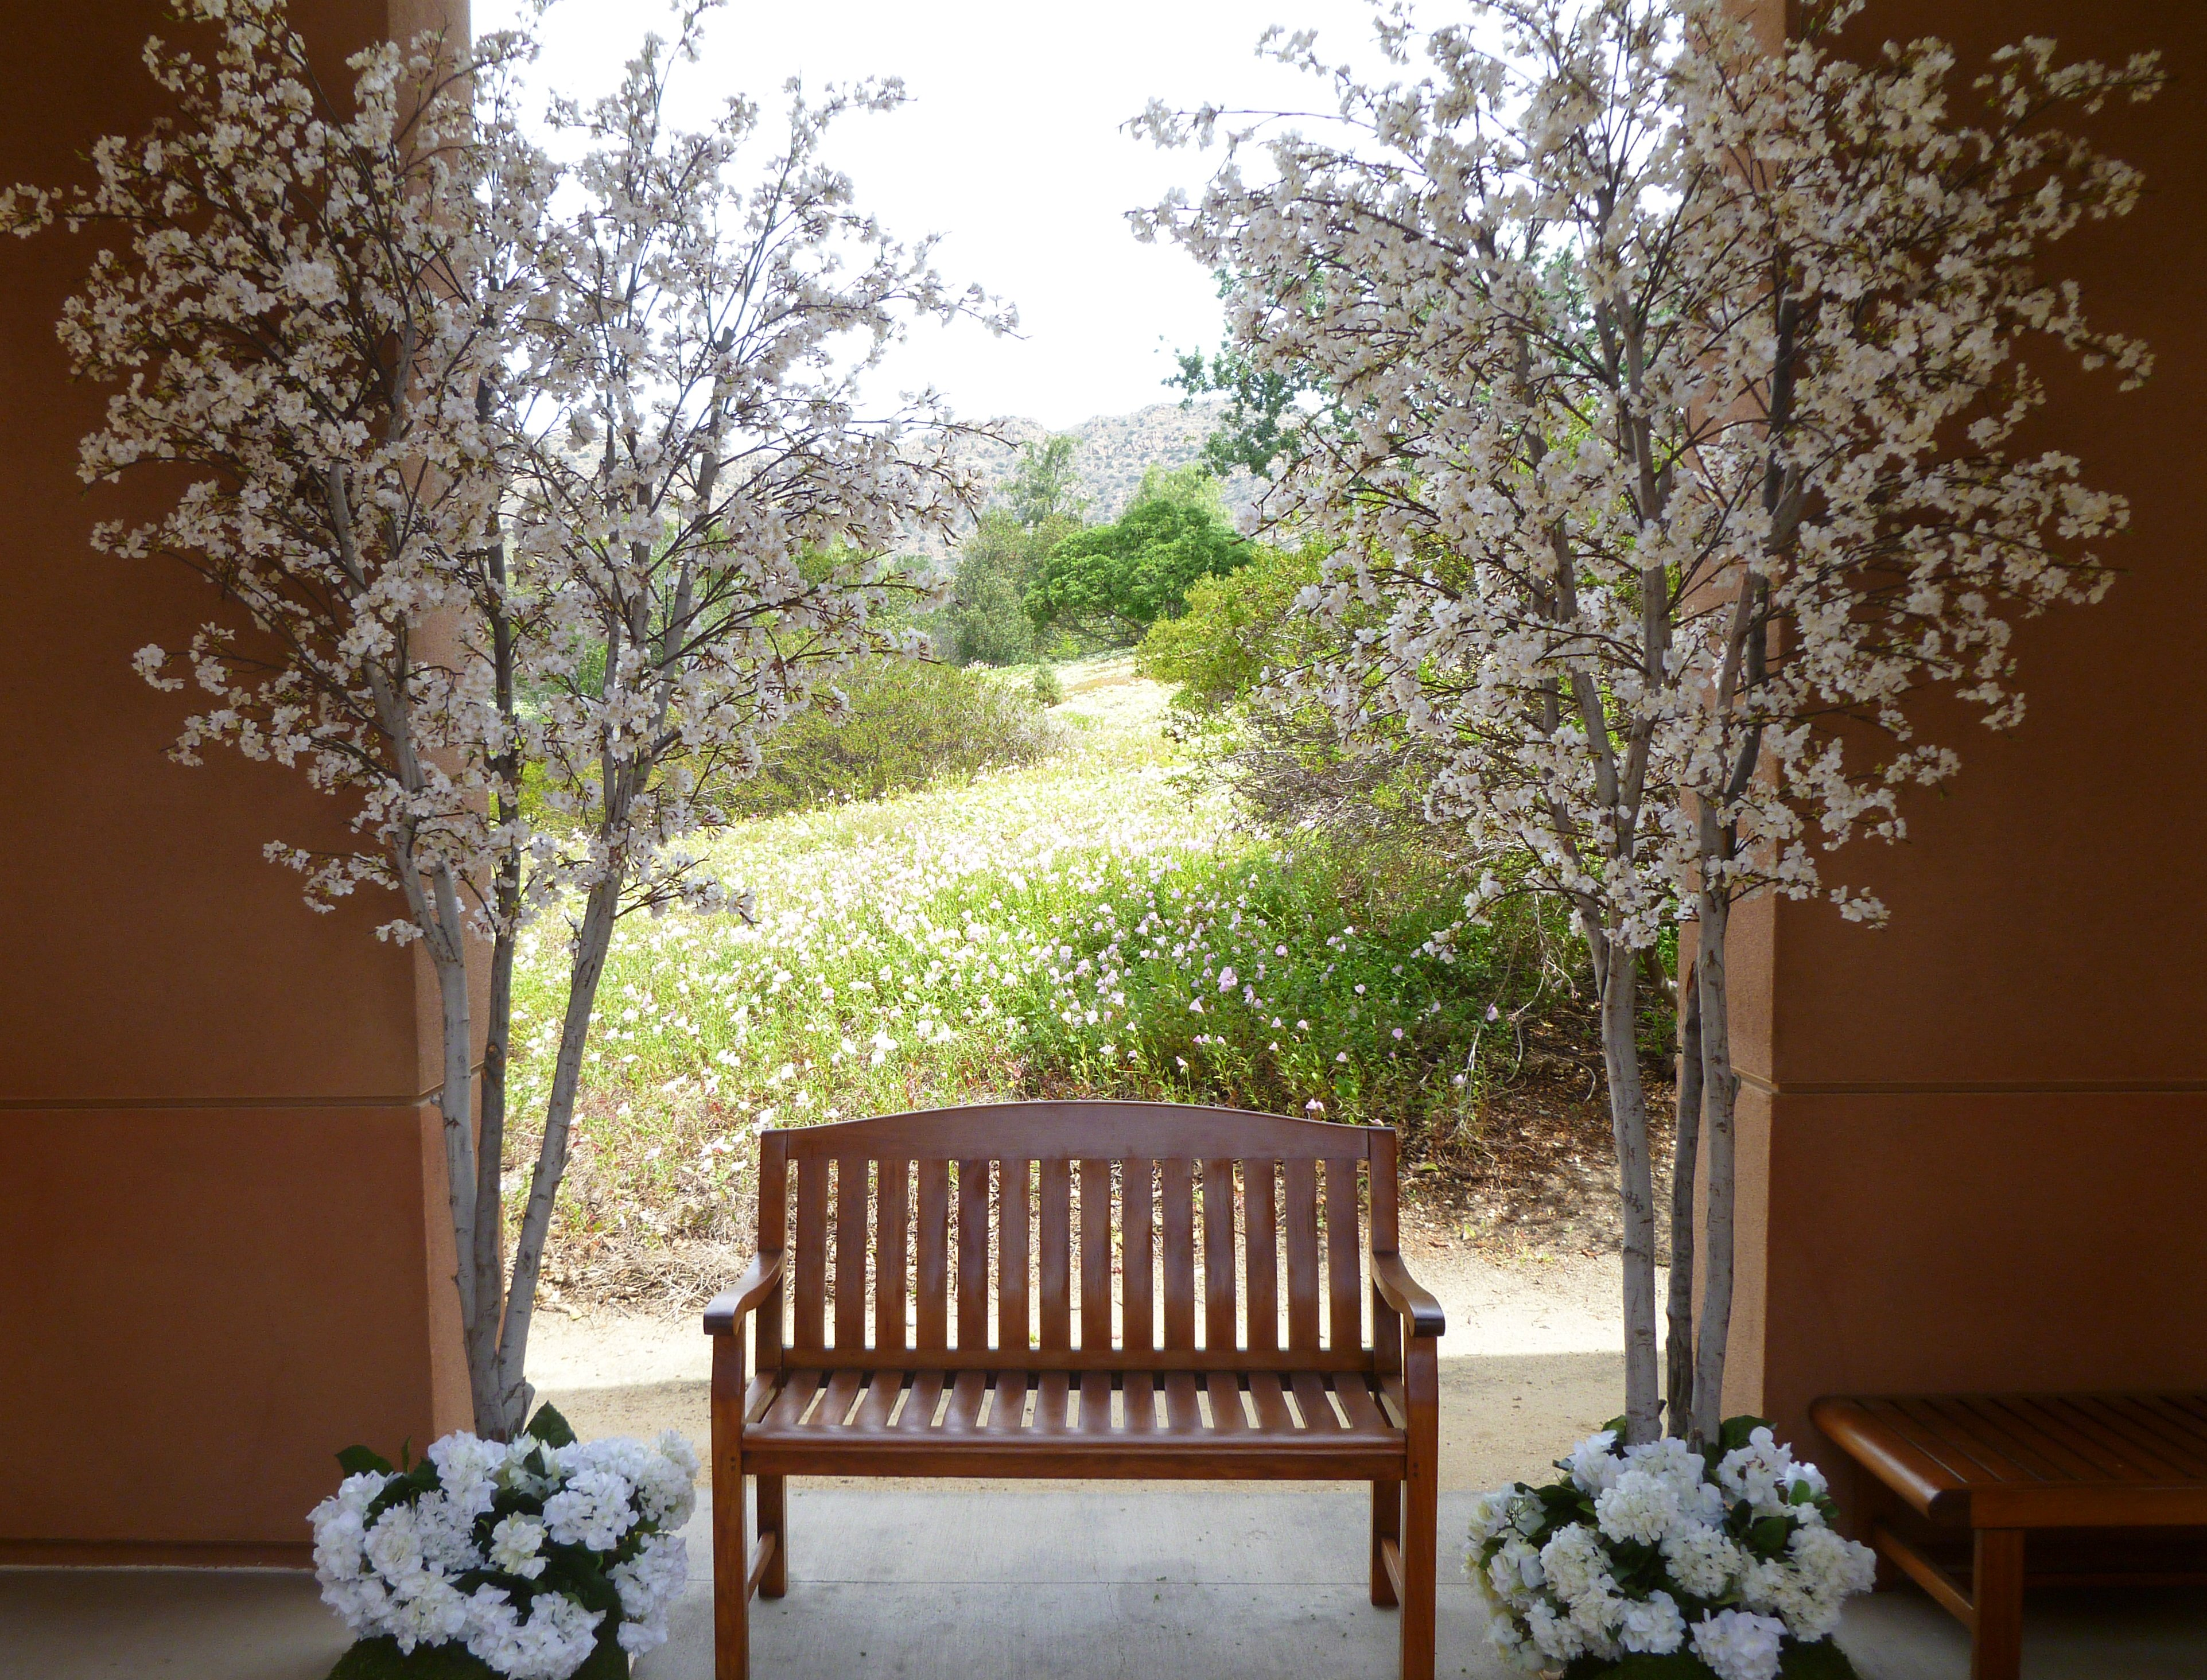 Event Faux Flower Al Pink And White Cherry Blossom Trees